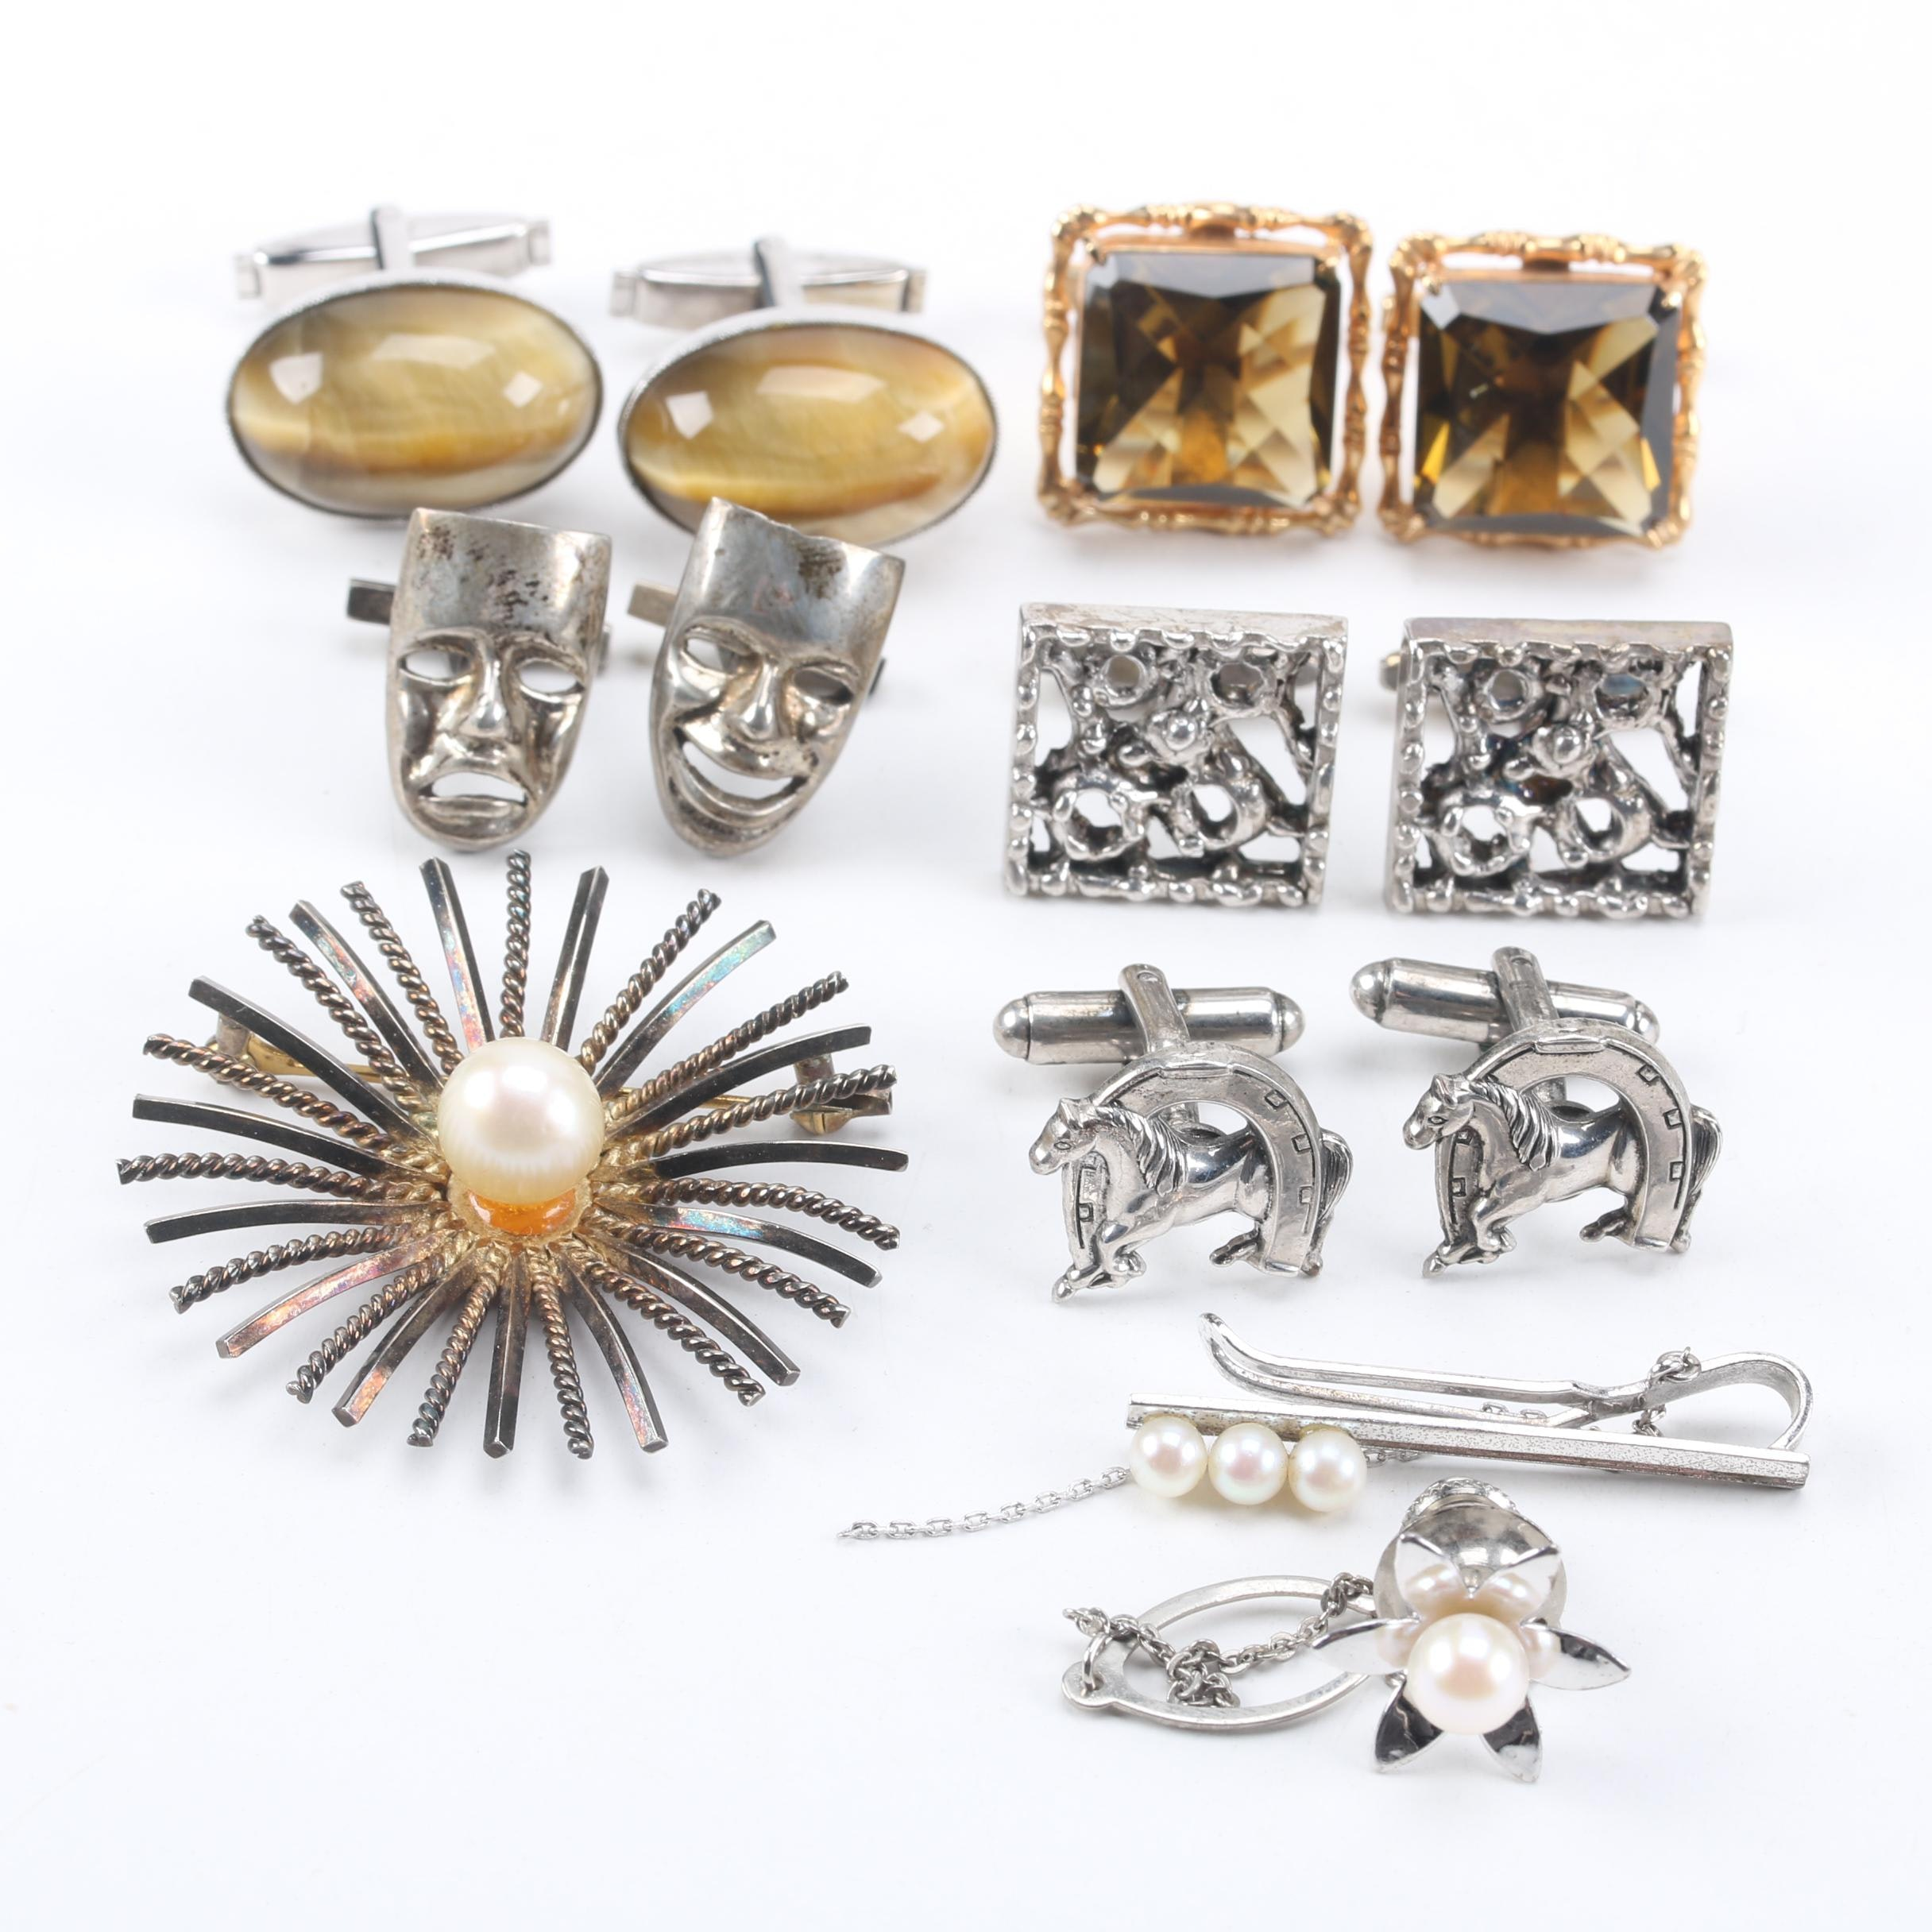 Assortment of Sterling Silver Jewelry Accessories